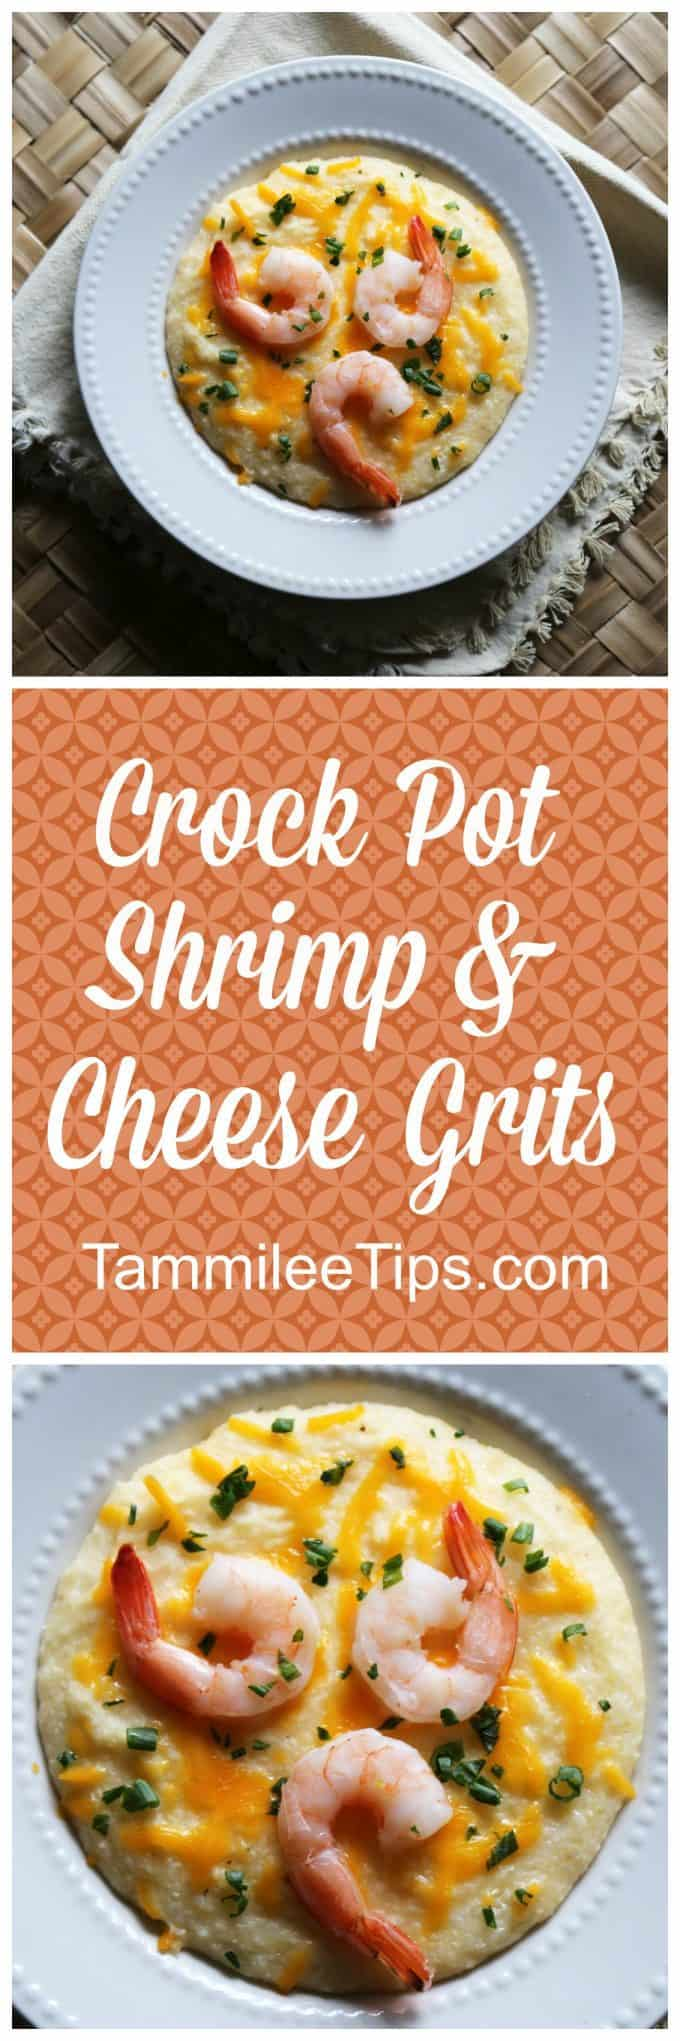 Super easy Crock Pot Shrimp and Cheese Grits Recipe! This simple southern slow cooker family meal is perfect for dinner or breakfast!  The crockpot does all the work!